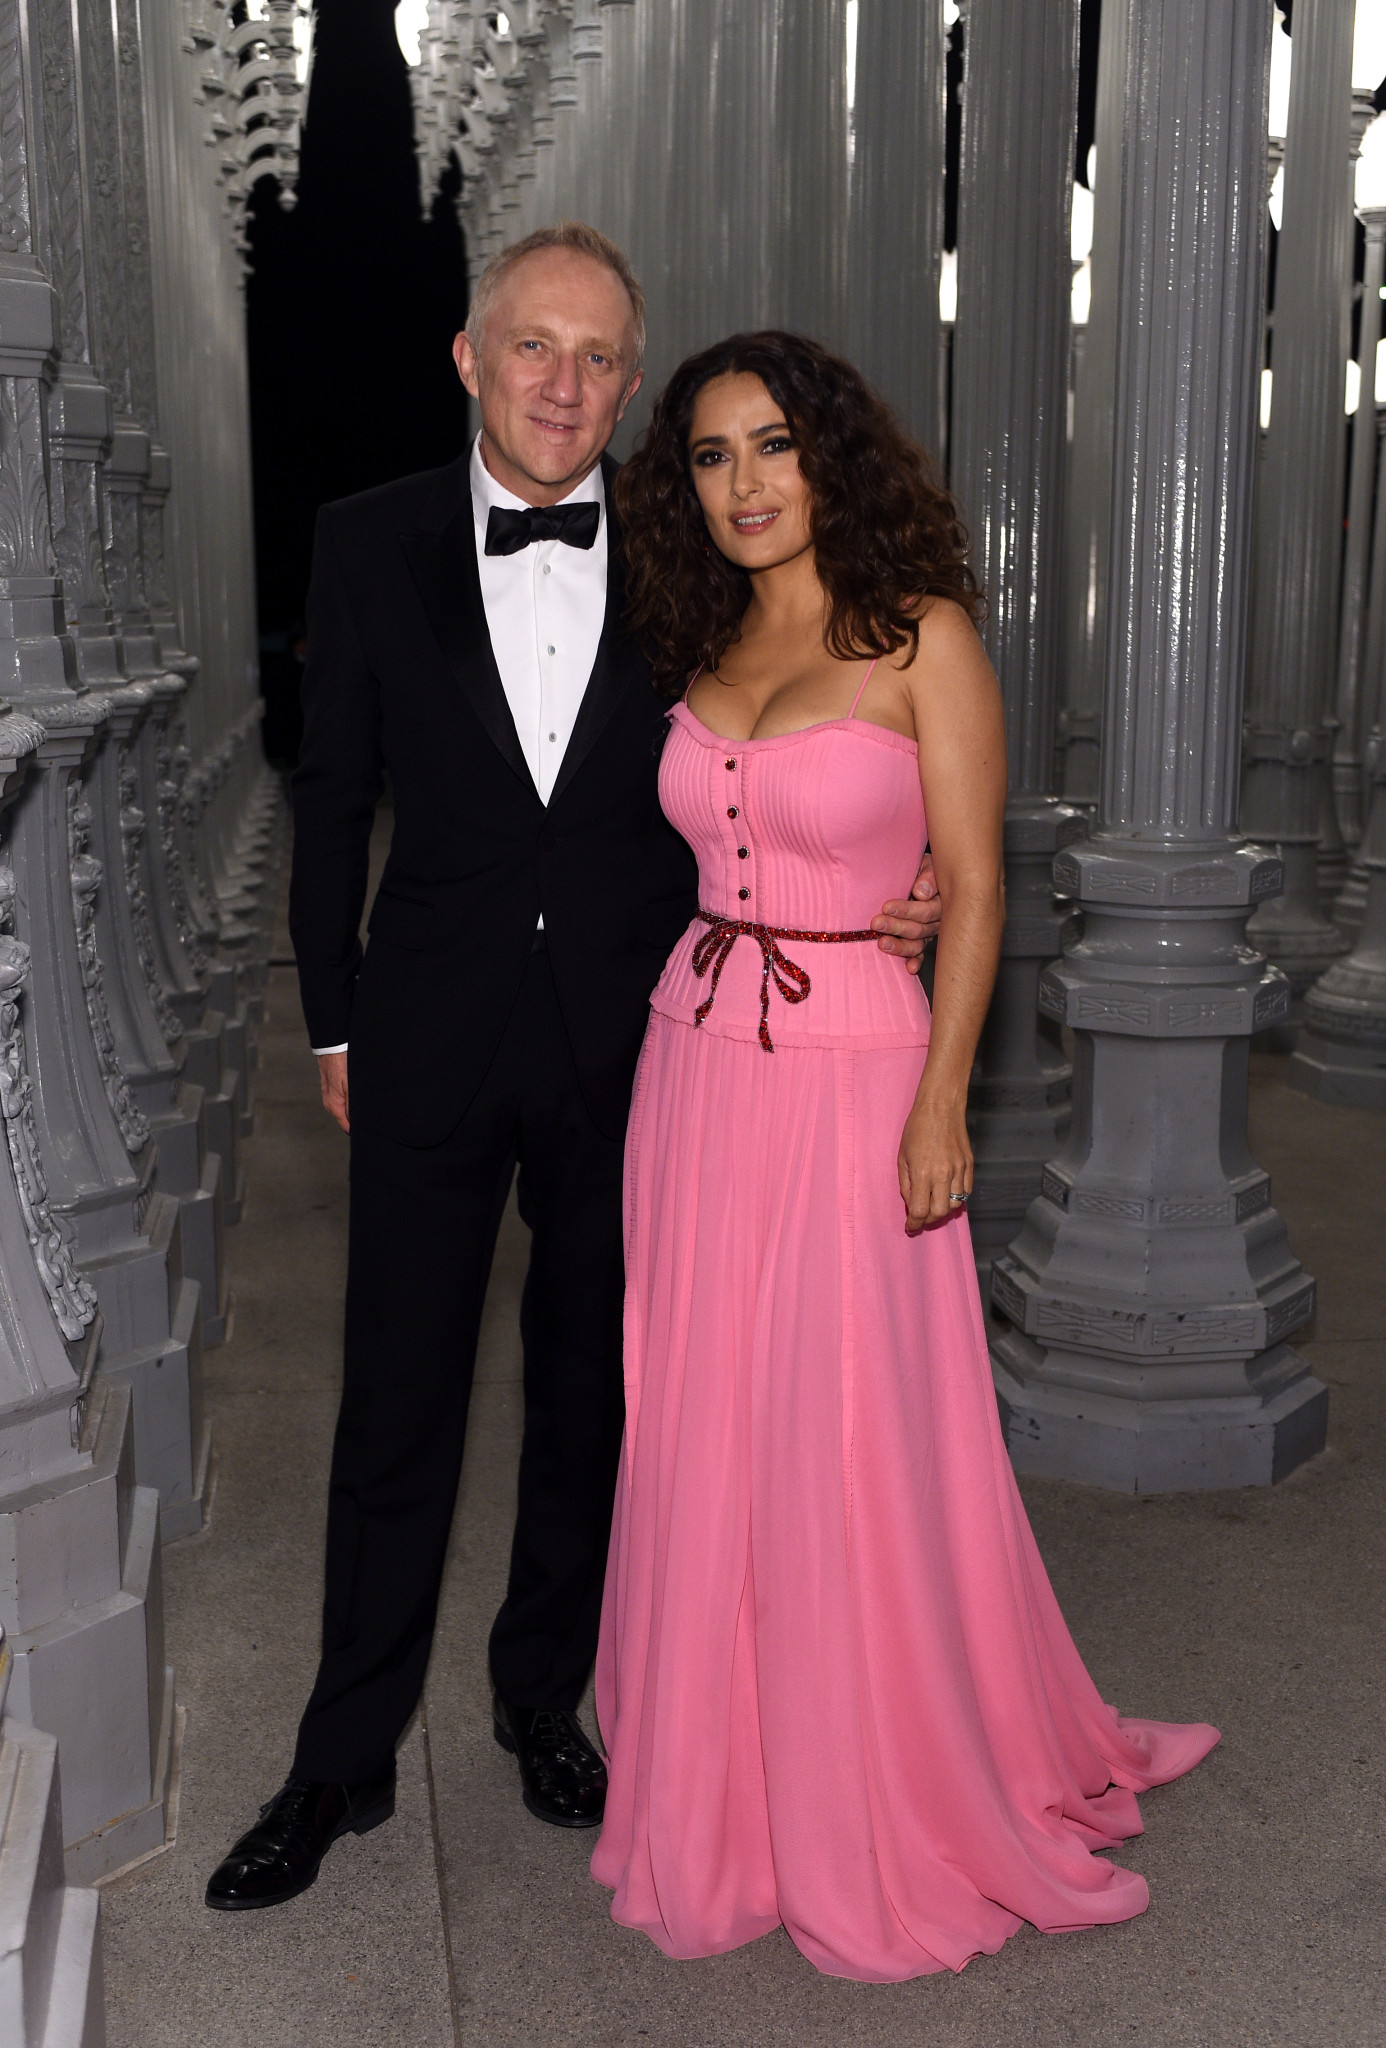 LOS ANGELES, CA - NOVEMBER 07:  Actress Salma Hayek (R) and businessman Francois-Henri Pinault attends LACMA 2015 Art+Film Gala Honoring James Turrell and Alejandro G Iñárritu, Presented by Gucci at LACMA on November 7, 2015 in Los Angeles, California.  (Photo by Stefanie Keenan/Getty Images for LACMA)